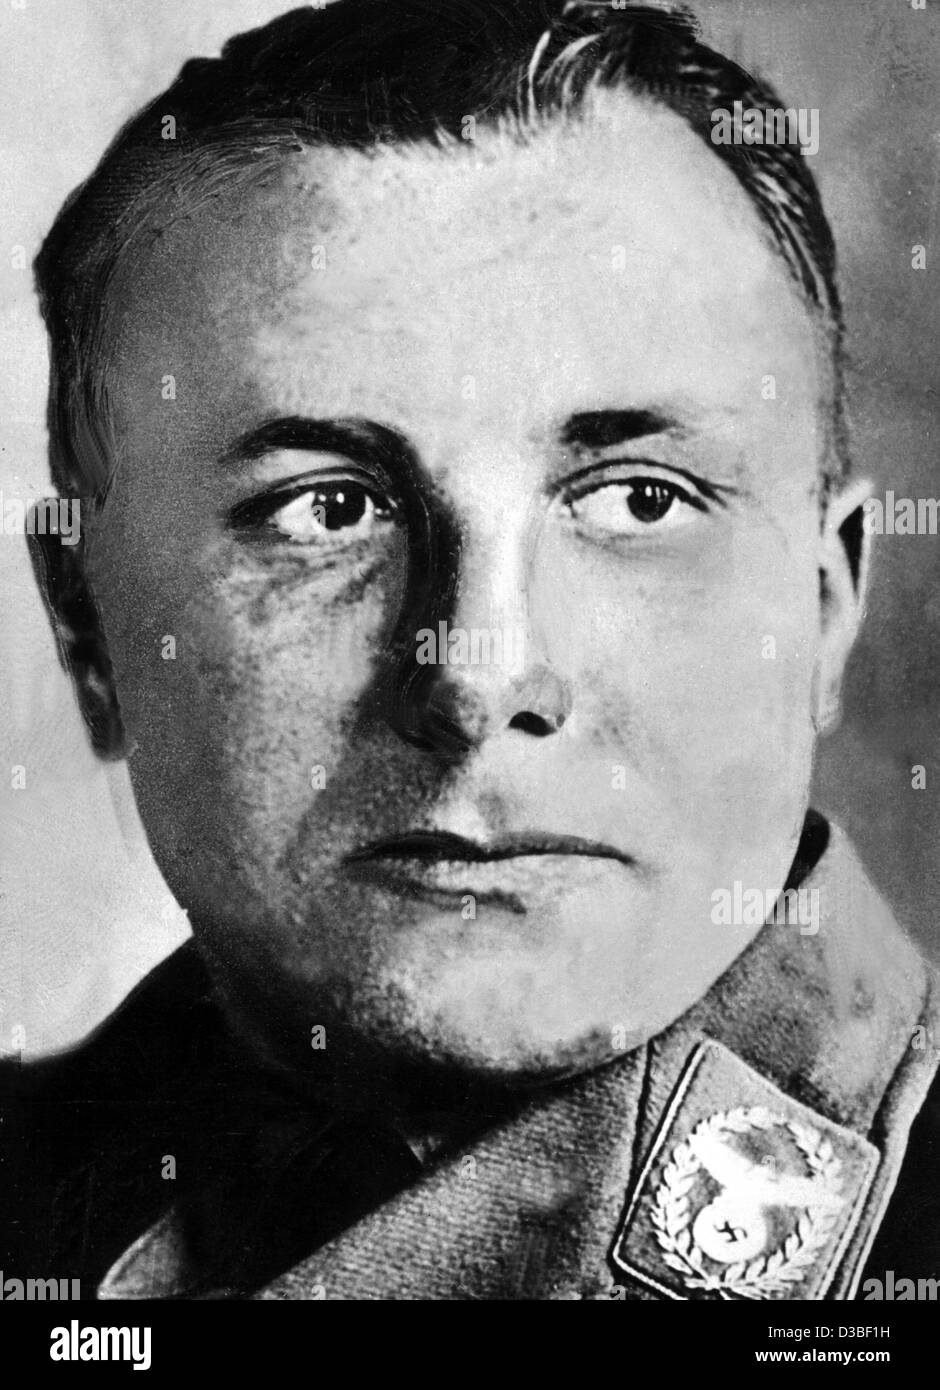 martin bormann Paul manning had the journalistic skill and personal investment to write one of the seminal books of twentieth century history, martin bormann: nazi in exile, as a chilling thriller that reads like a robert ludlam novel.